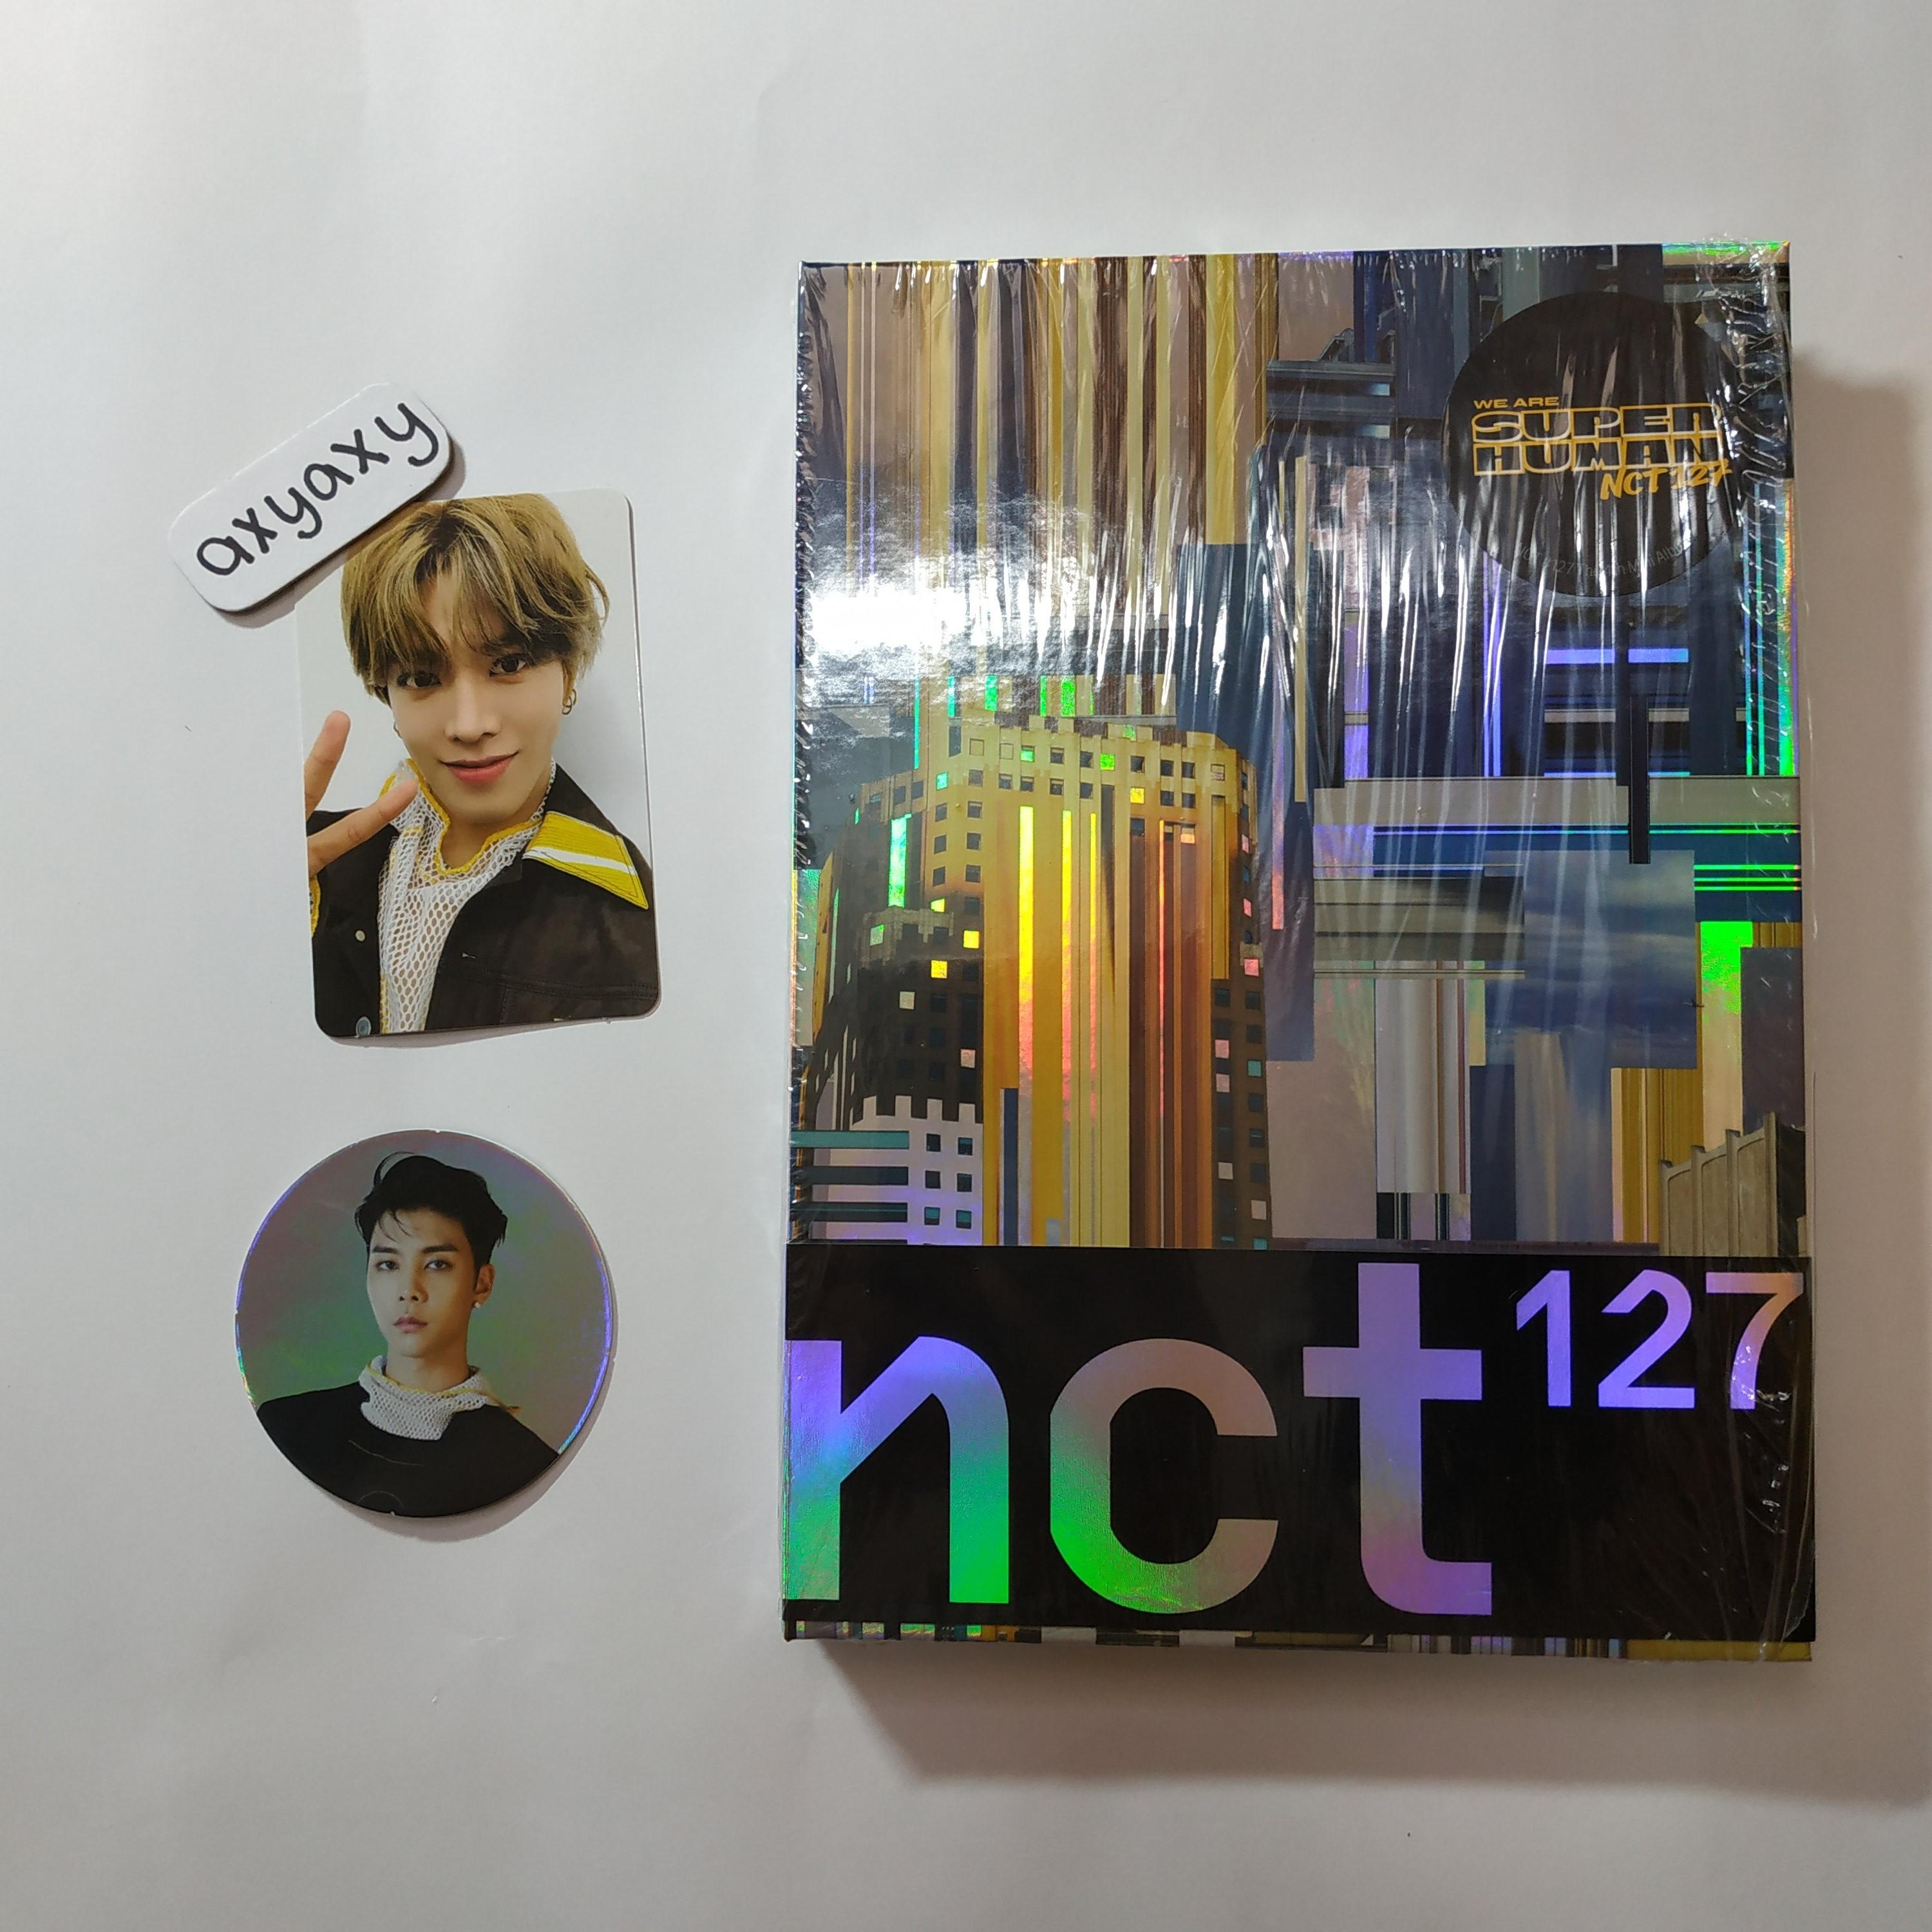 [WTS] NCT 127 SUPERHUMAN Normal Album with Yuta pc and Johnny cc